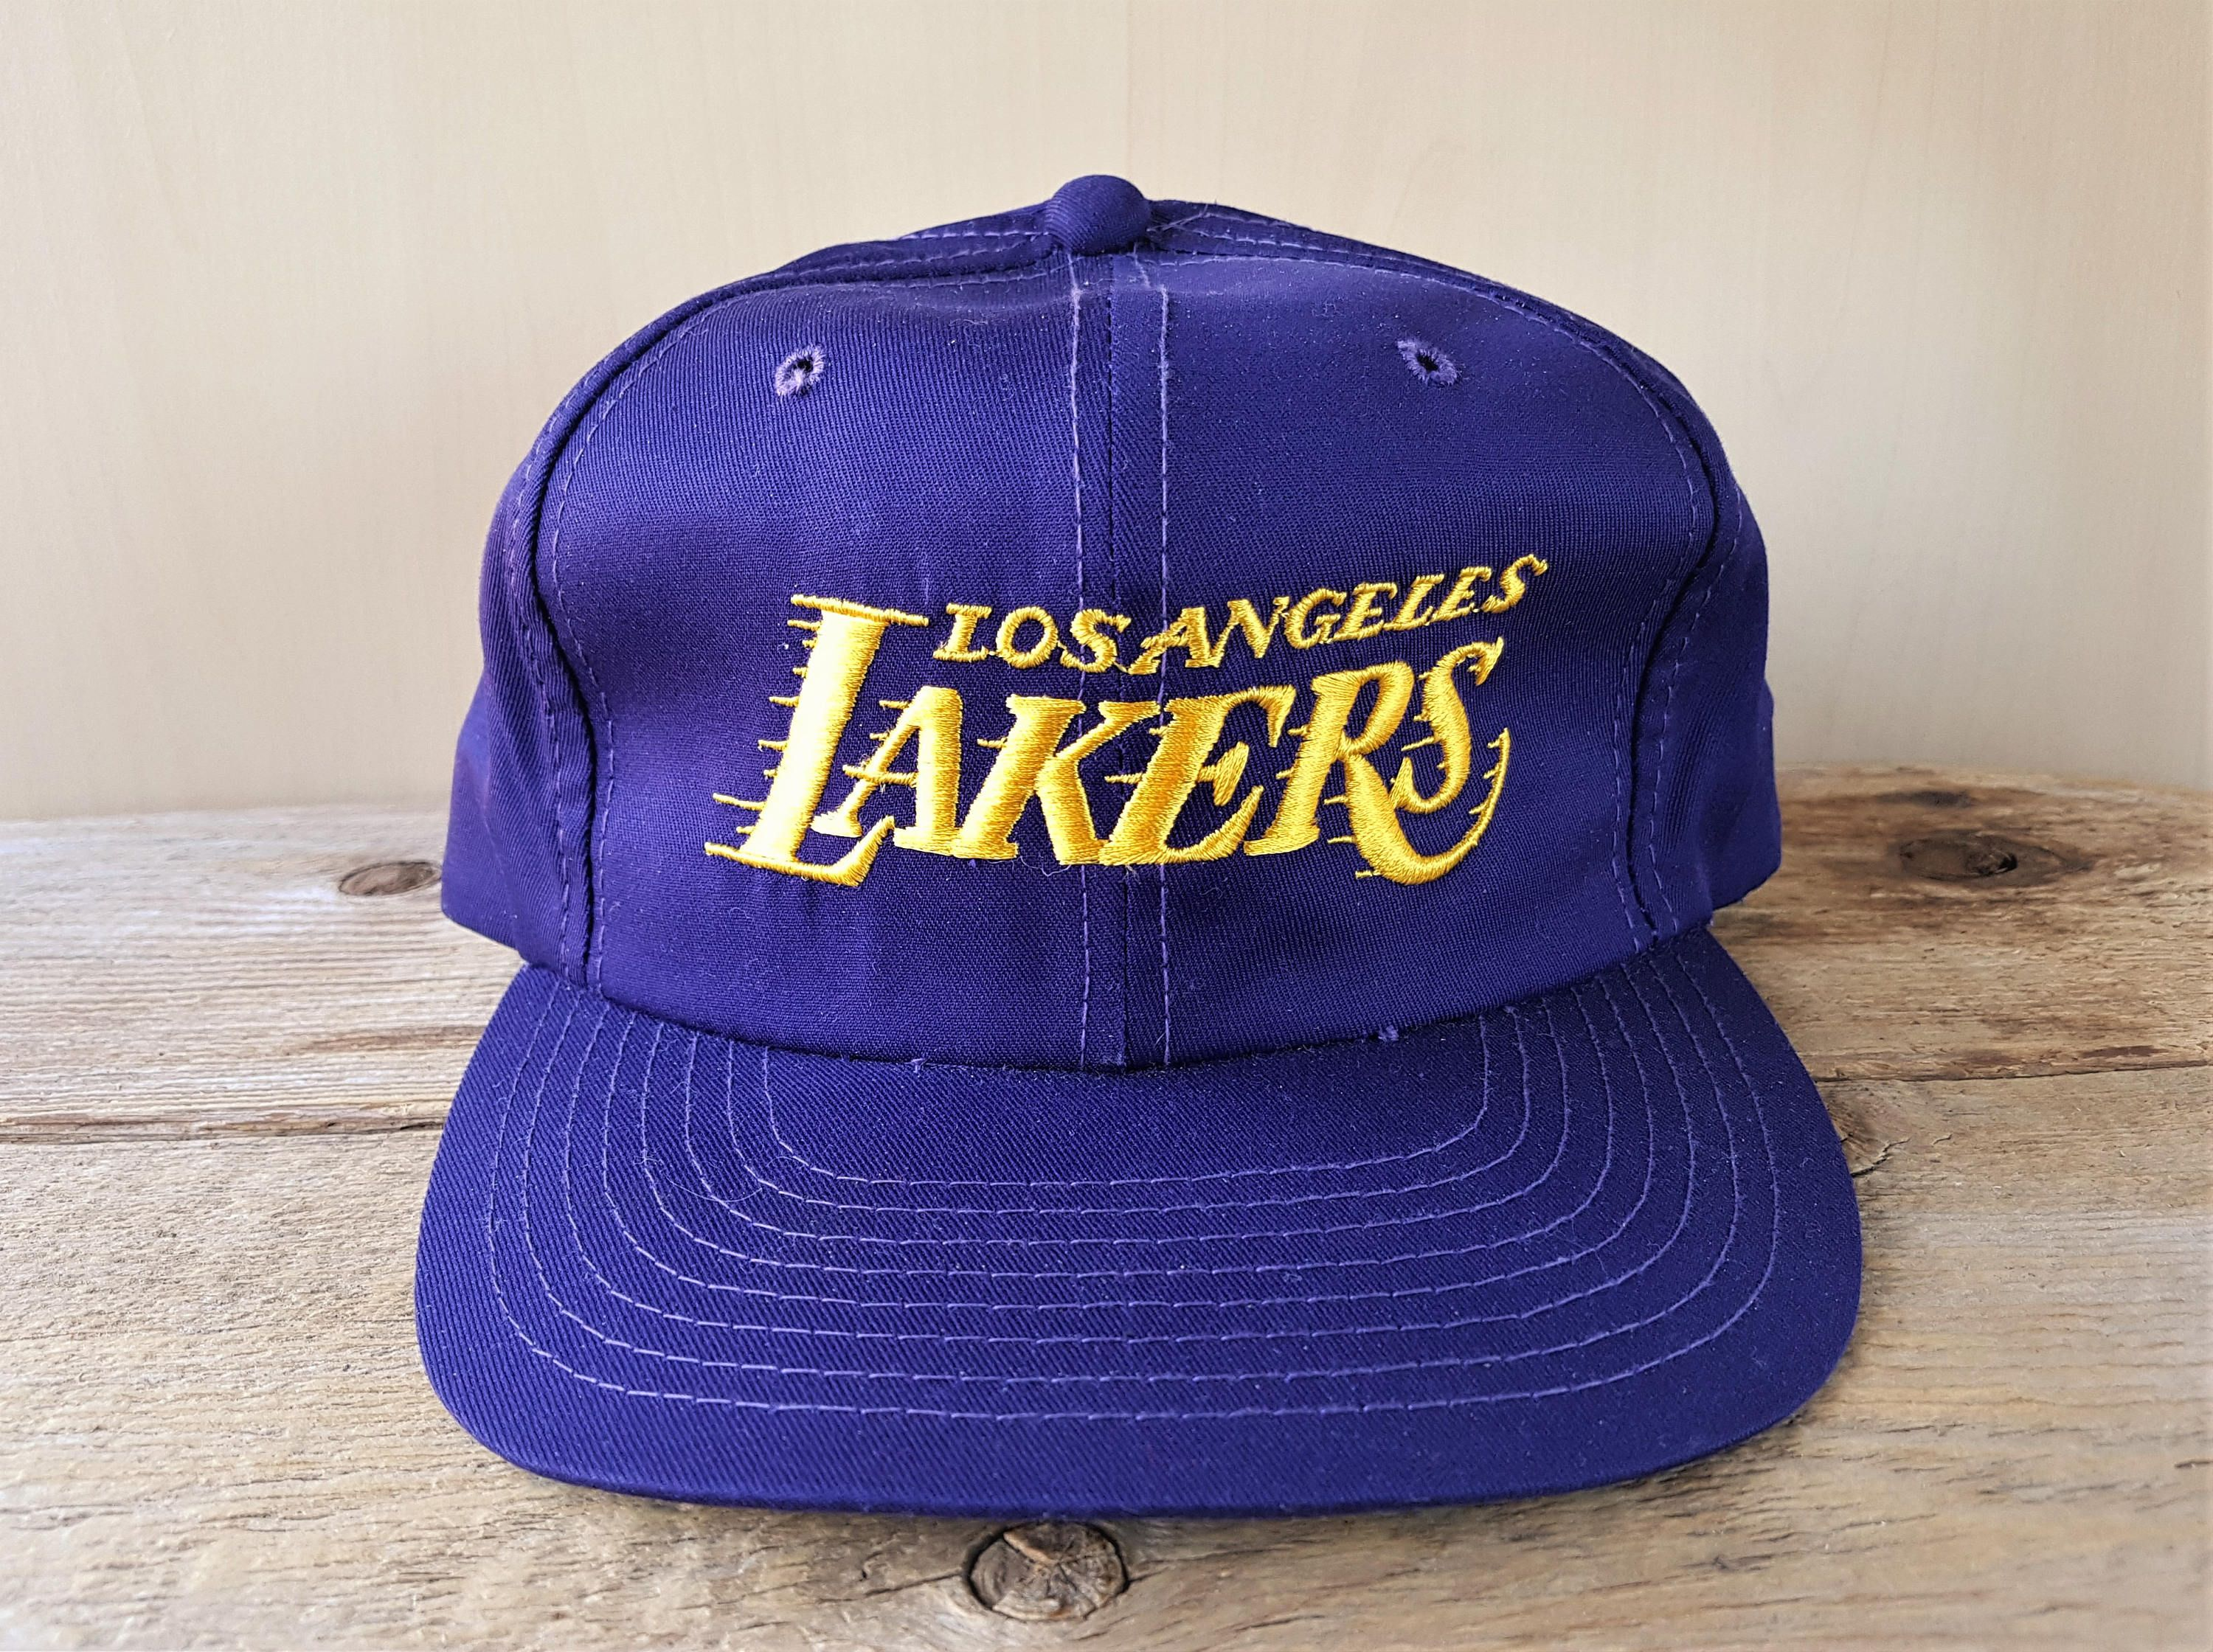 Vintage 80s Los Angeles Lakers Snapback Hat Macgregor Sports Specialties The Twill Official Licensed Nba Basketball T In 2020 Lakers Hat Nba Basketball Teams Sport Hat